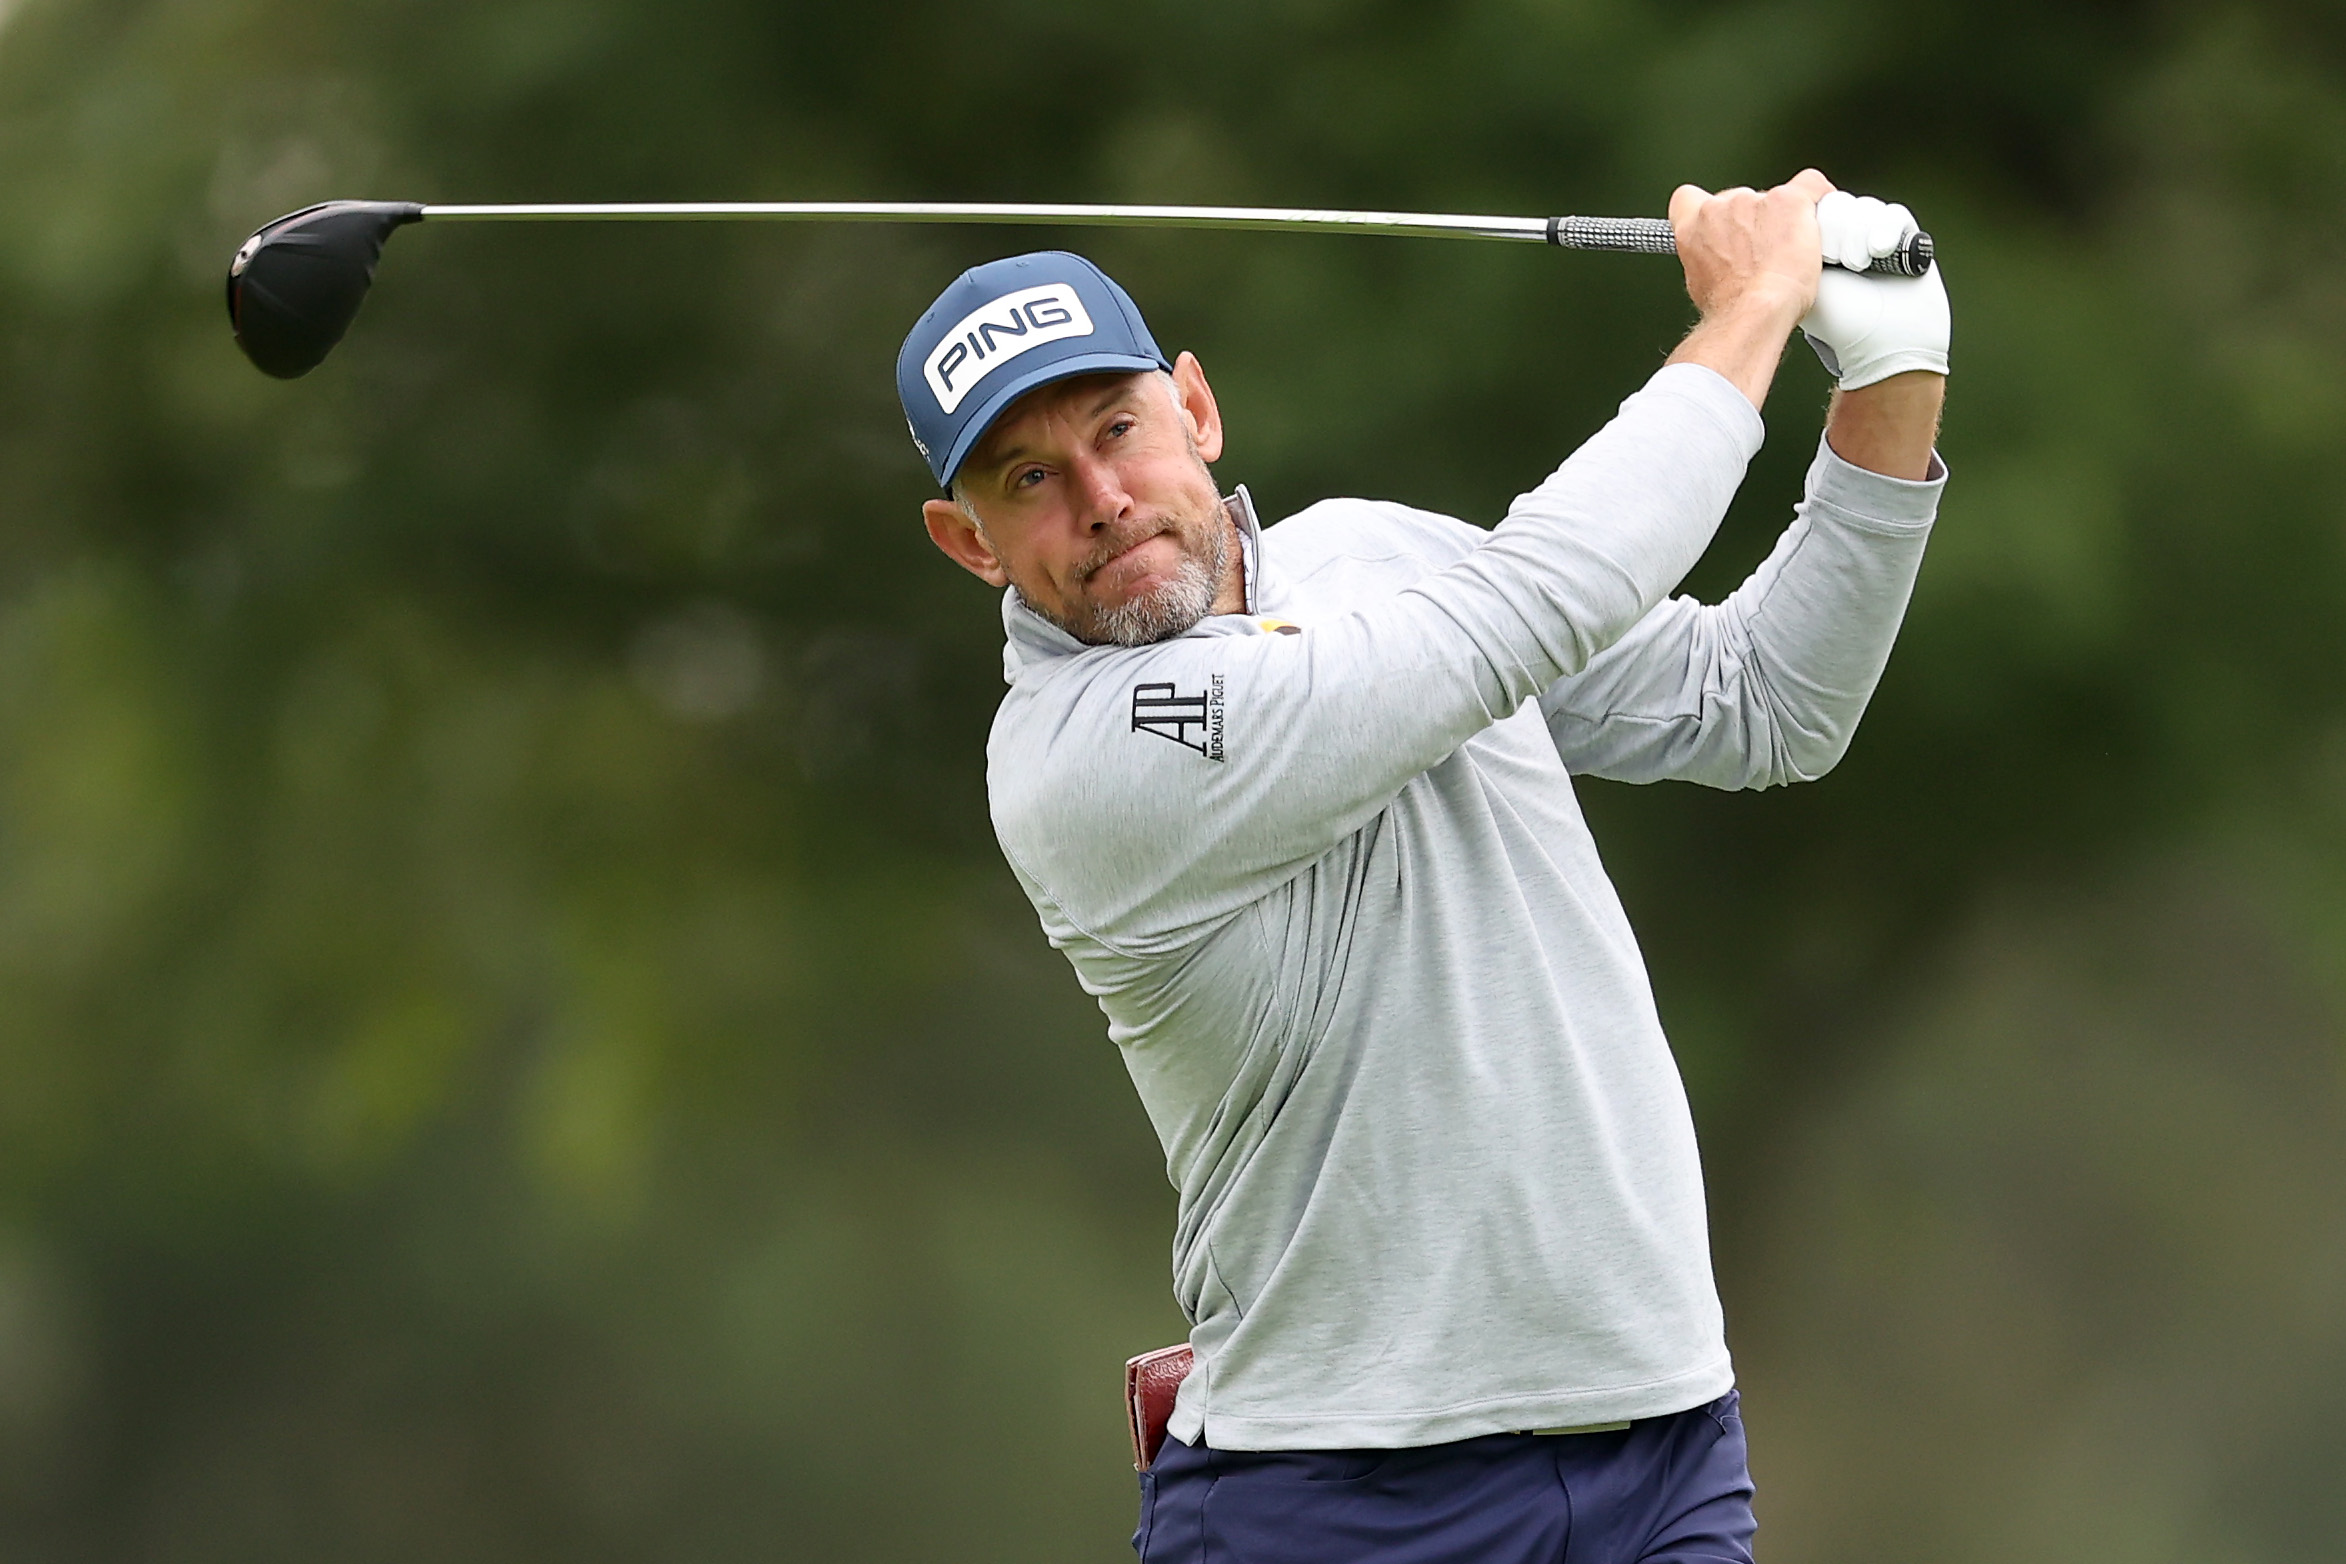 Lee Westwood is bidding for his first major title in his 83rd attempt